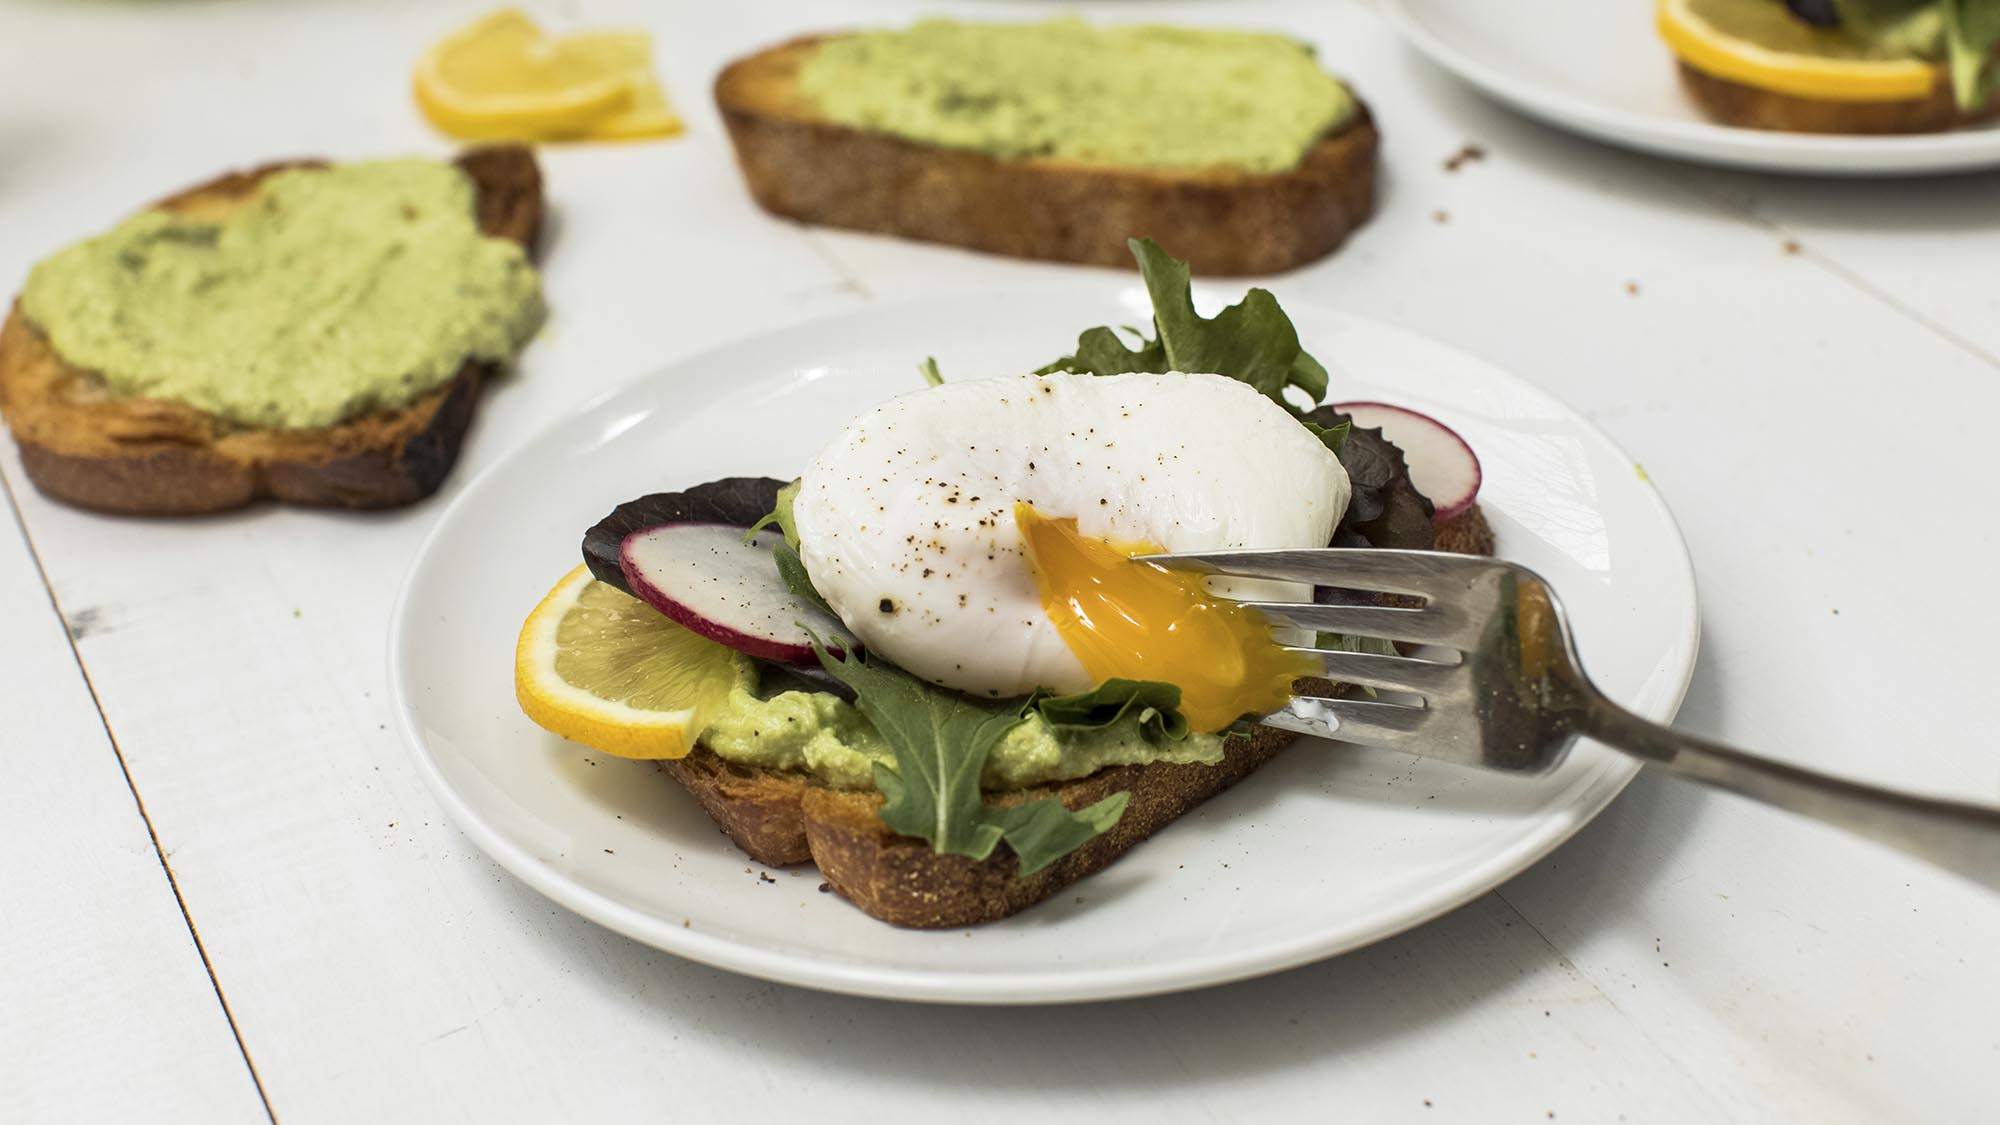 Avocado_Ricotta_Toast_With_Poached_Eggs_2000x1125.jpg